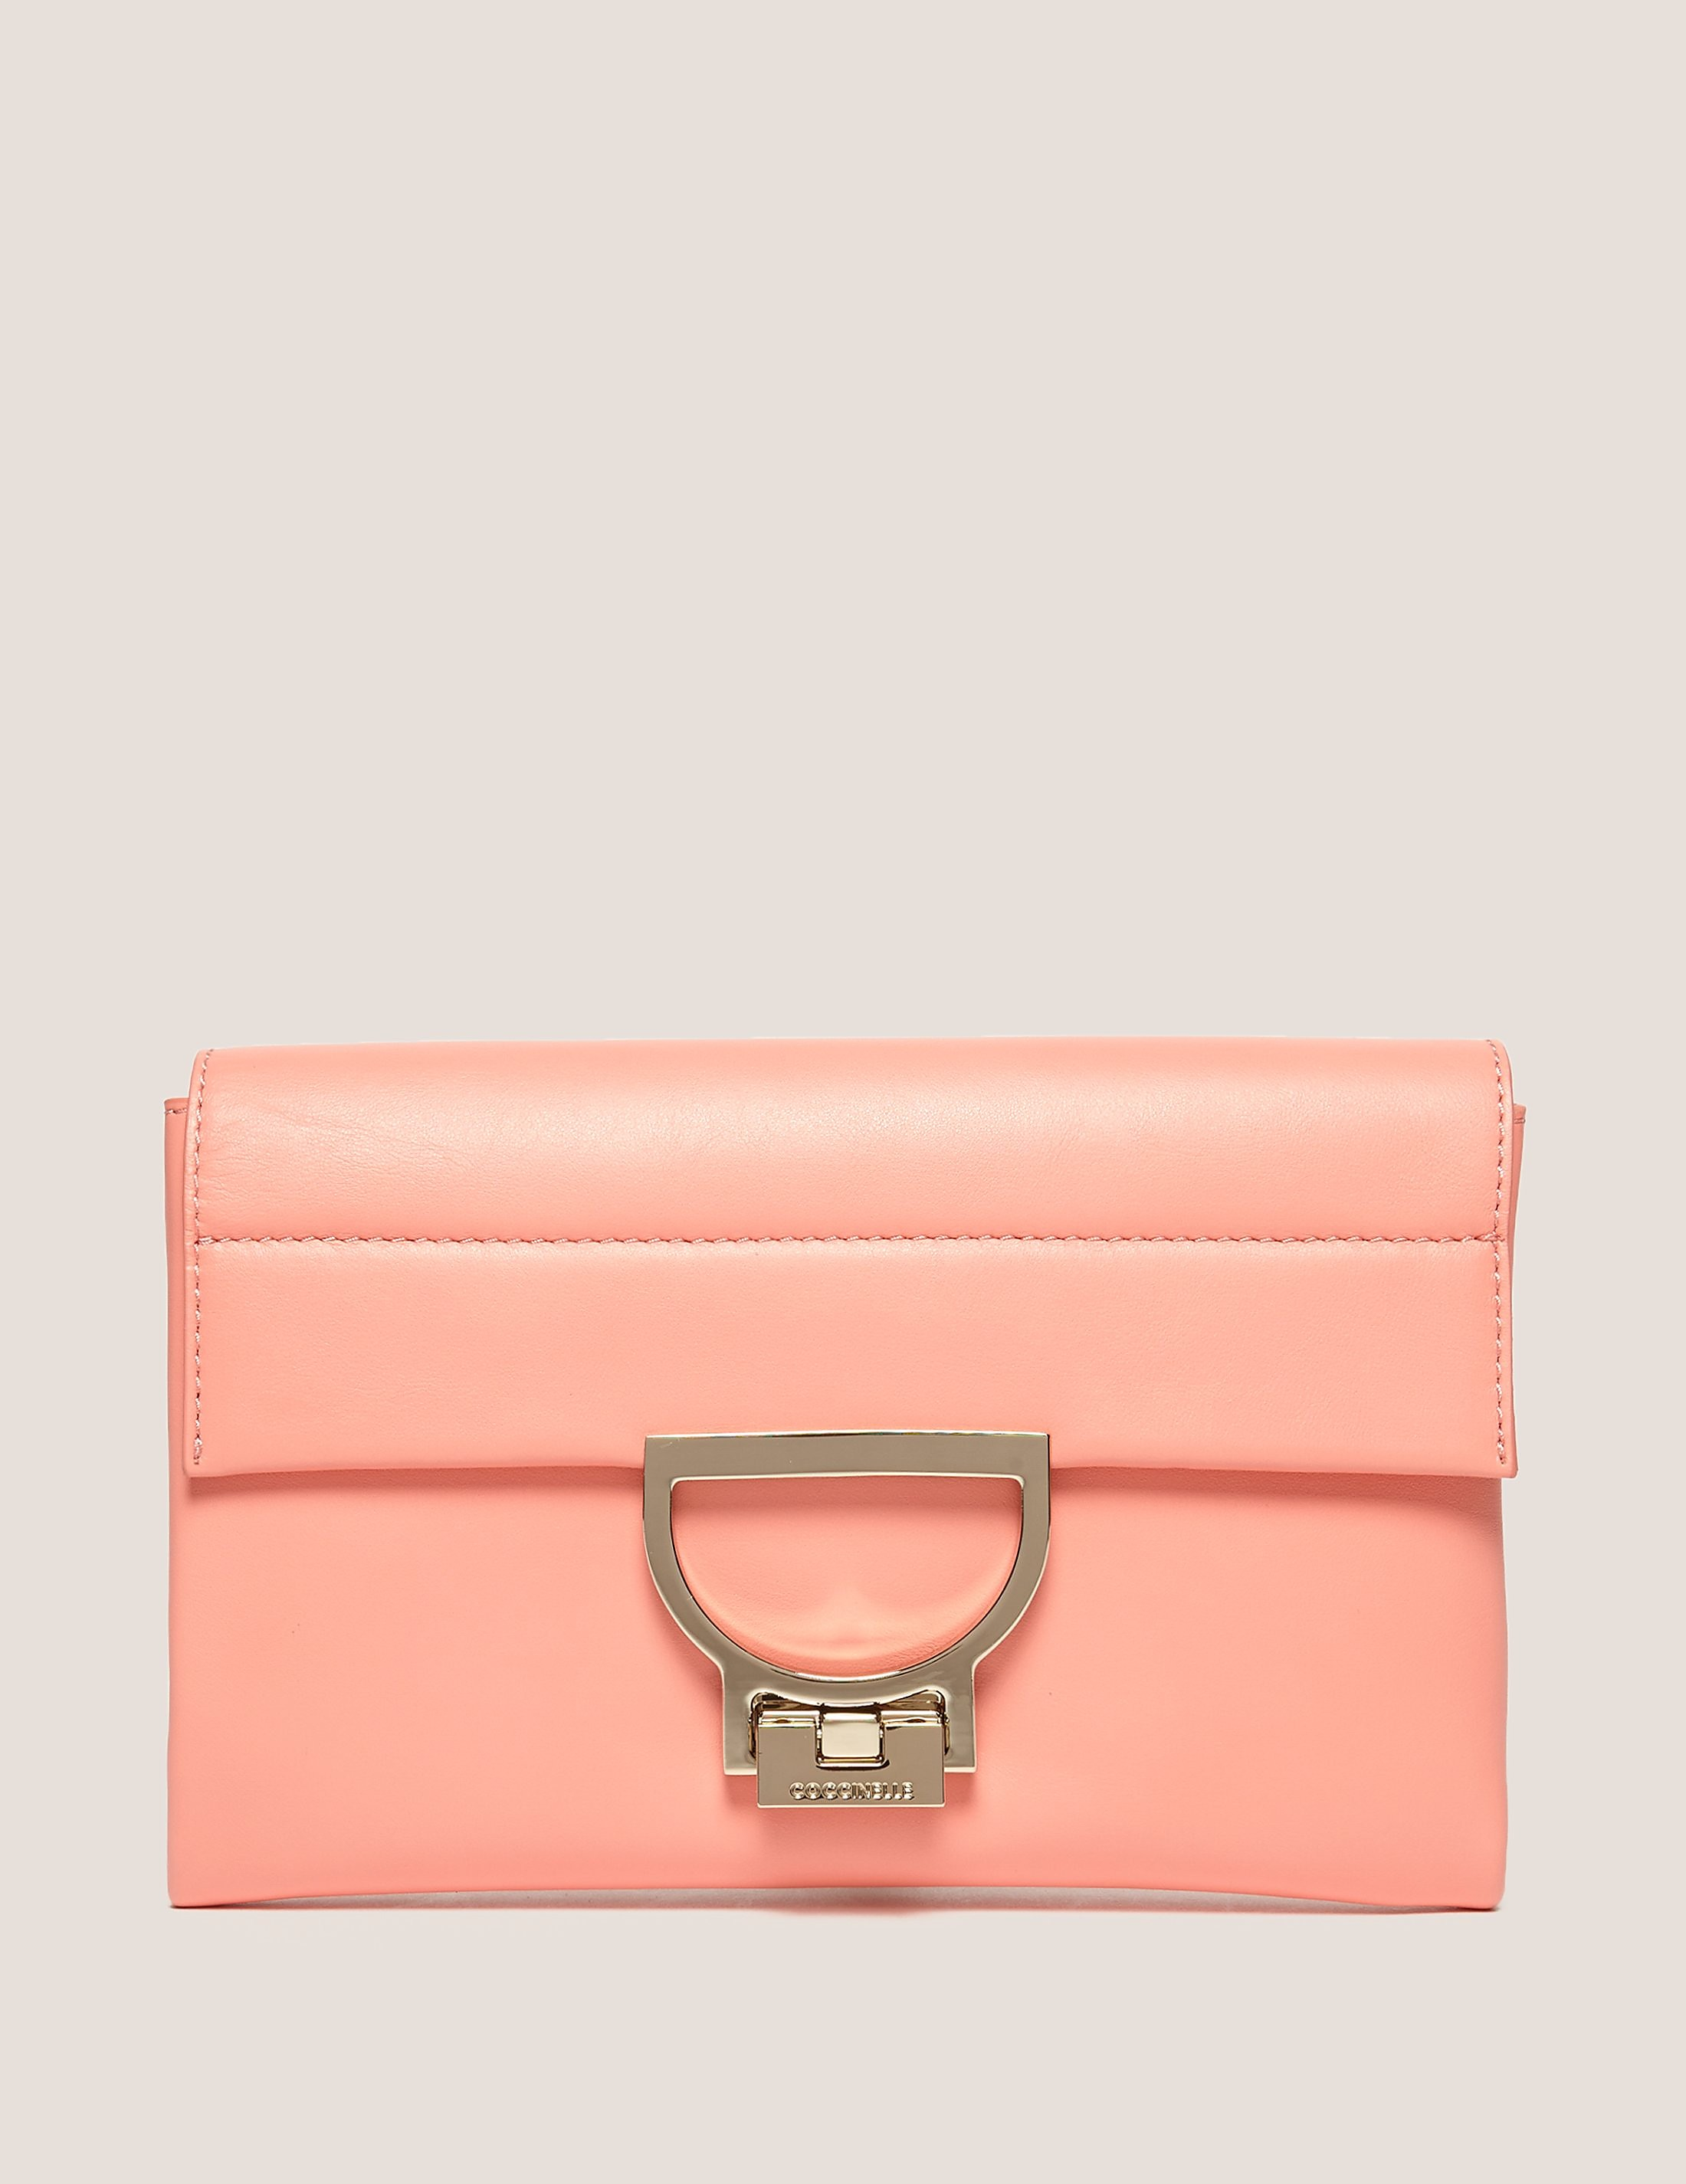 Coccinelle Arlettis Cahin Cross Body Bag